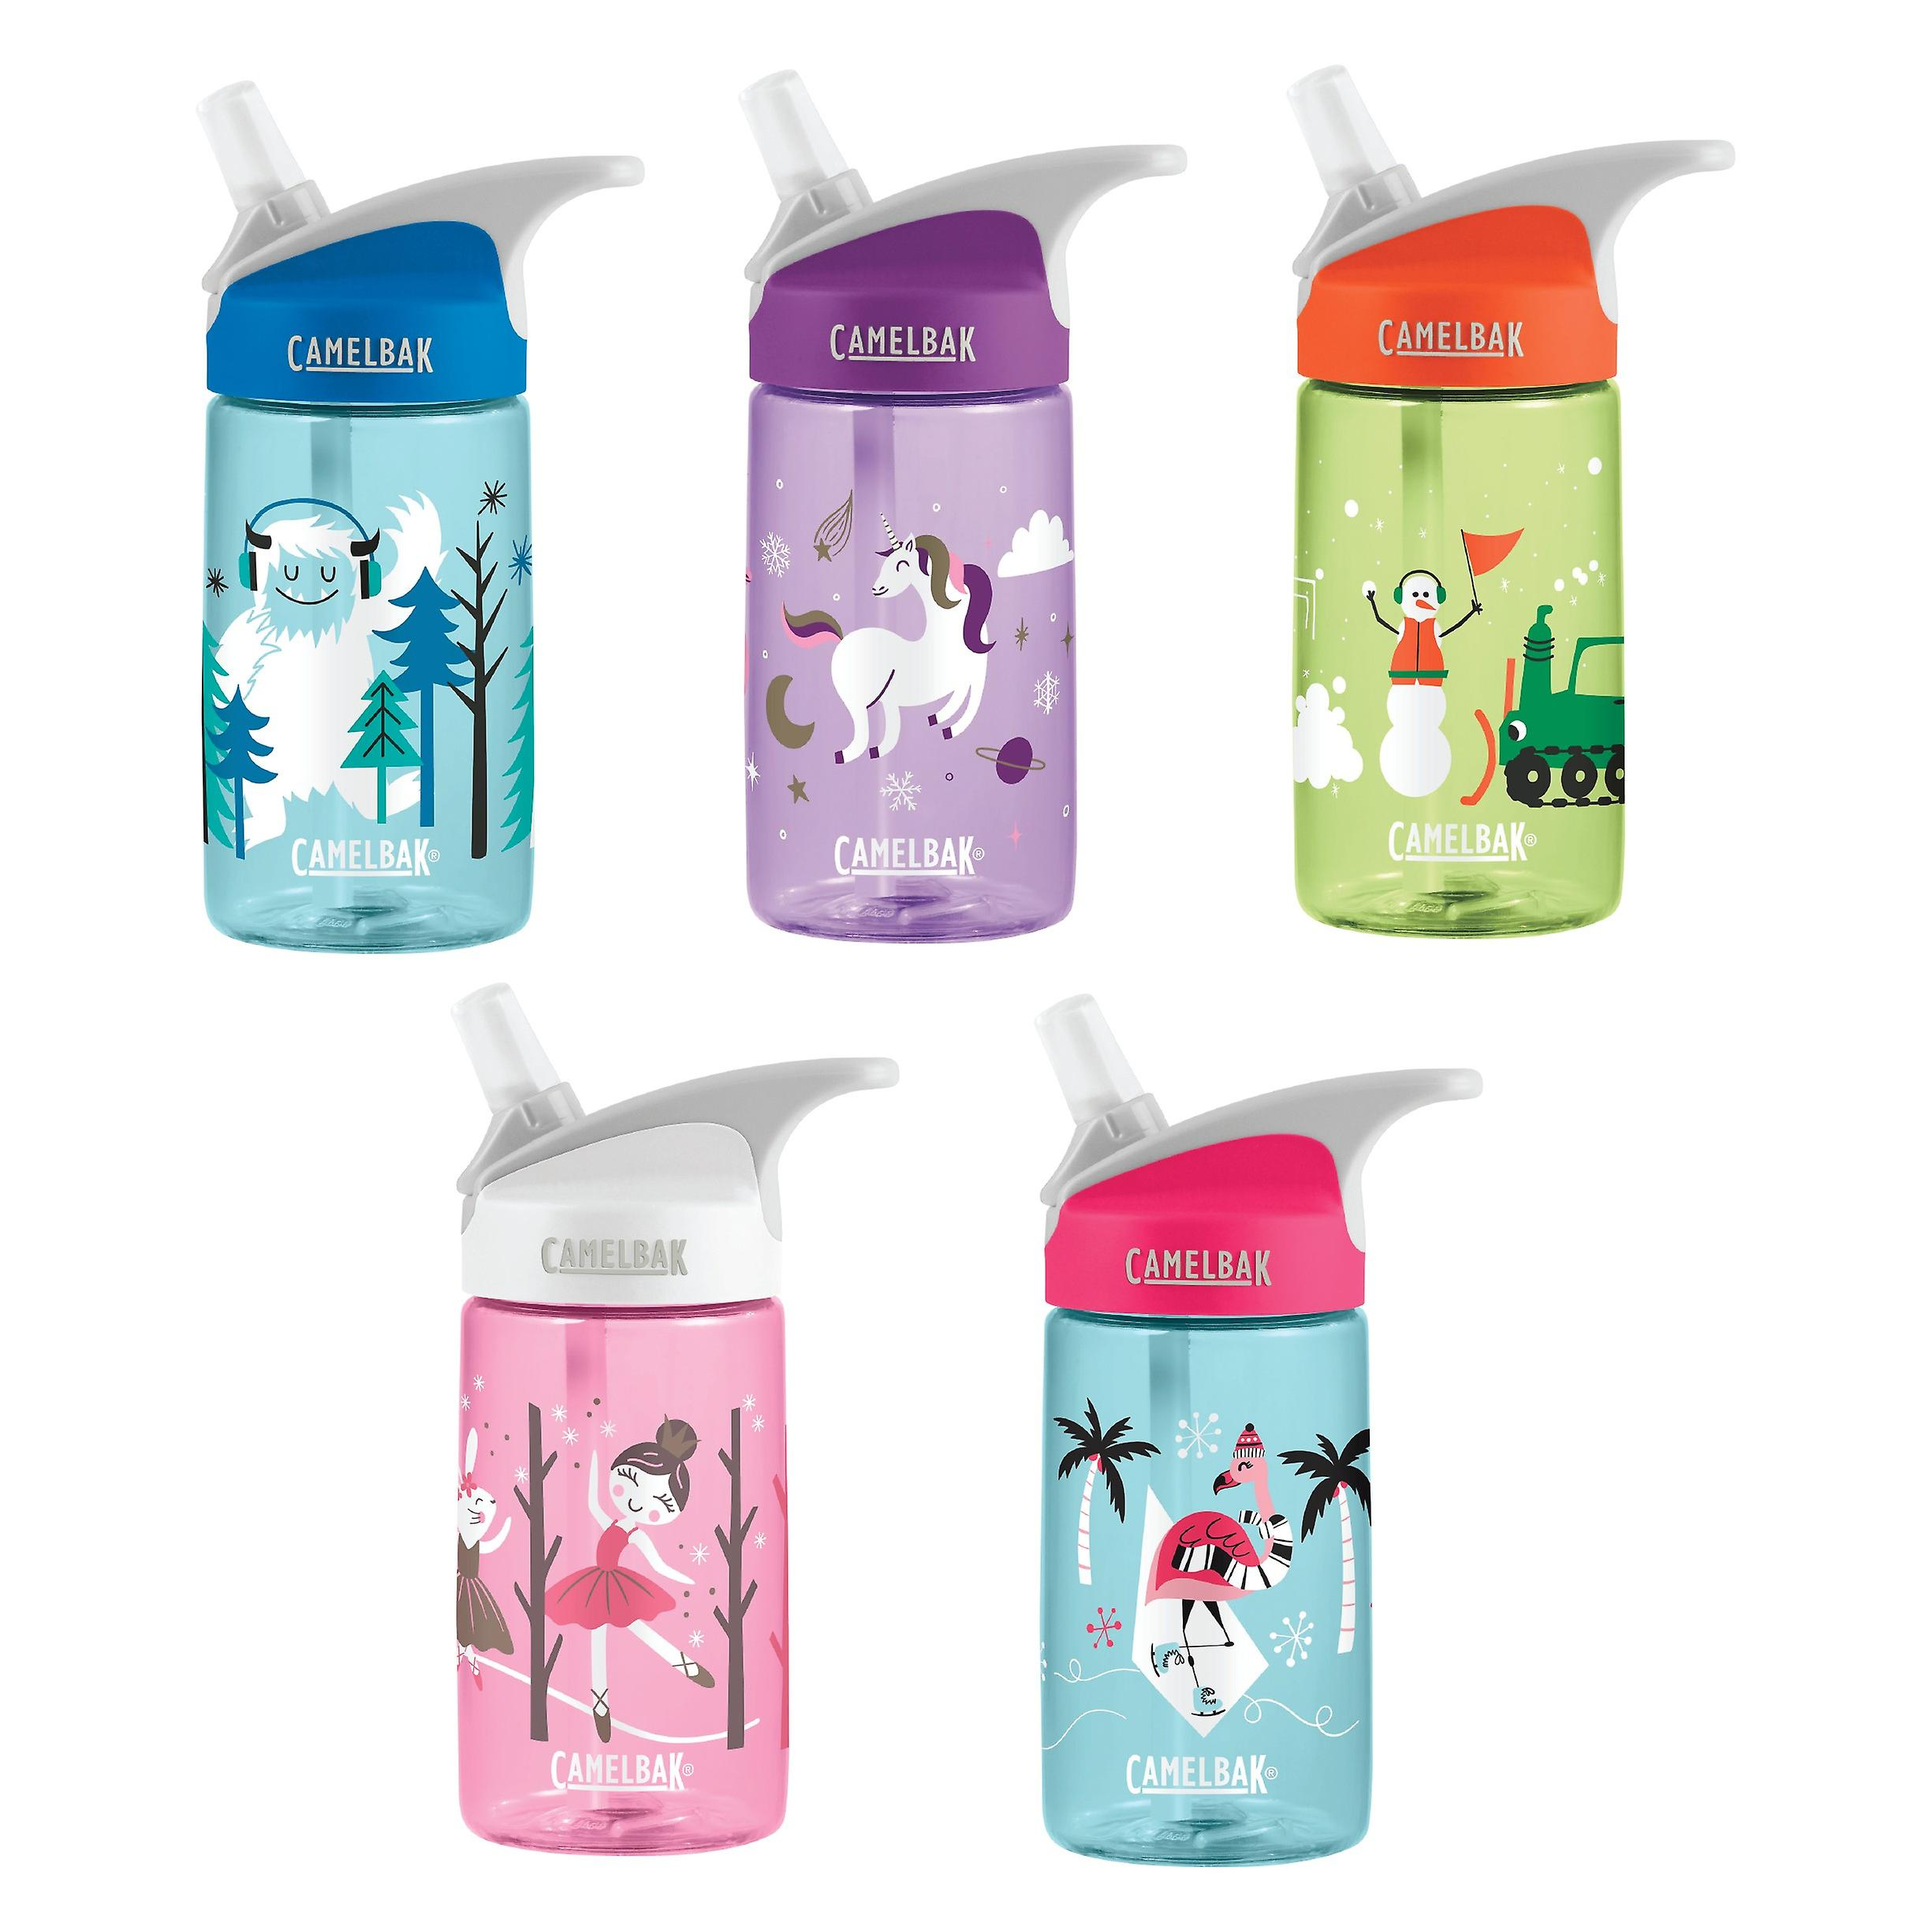 Camelbak Eddy Kids 400ml/12oz spill proof water bottle - Limited Holiday edition